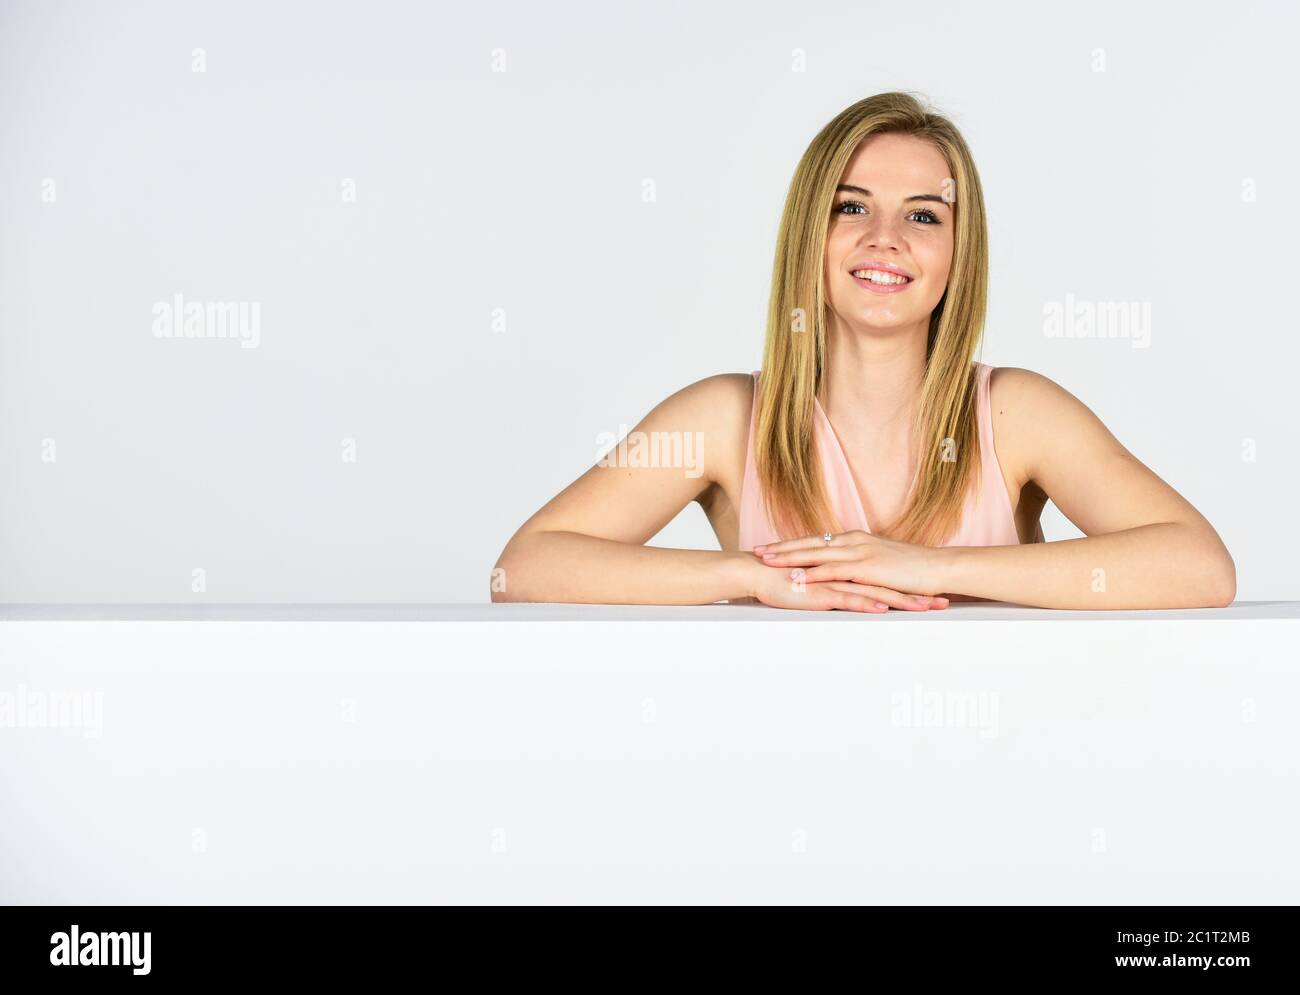 Femininity And Tenderness Lady Lean Copy Space Surface Commercial Banner Goods For Female Beauty Shop Adorable Woman Stand Behind Banner Advertisement Marketing And Promotion Portrait Of Girl Stock Photo Alamy